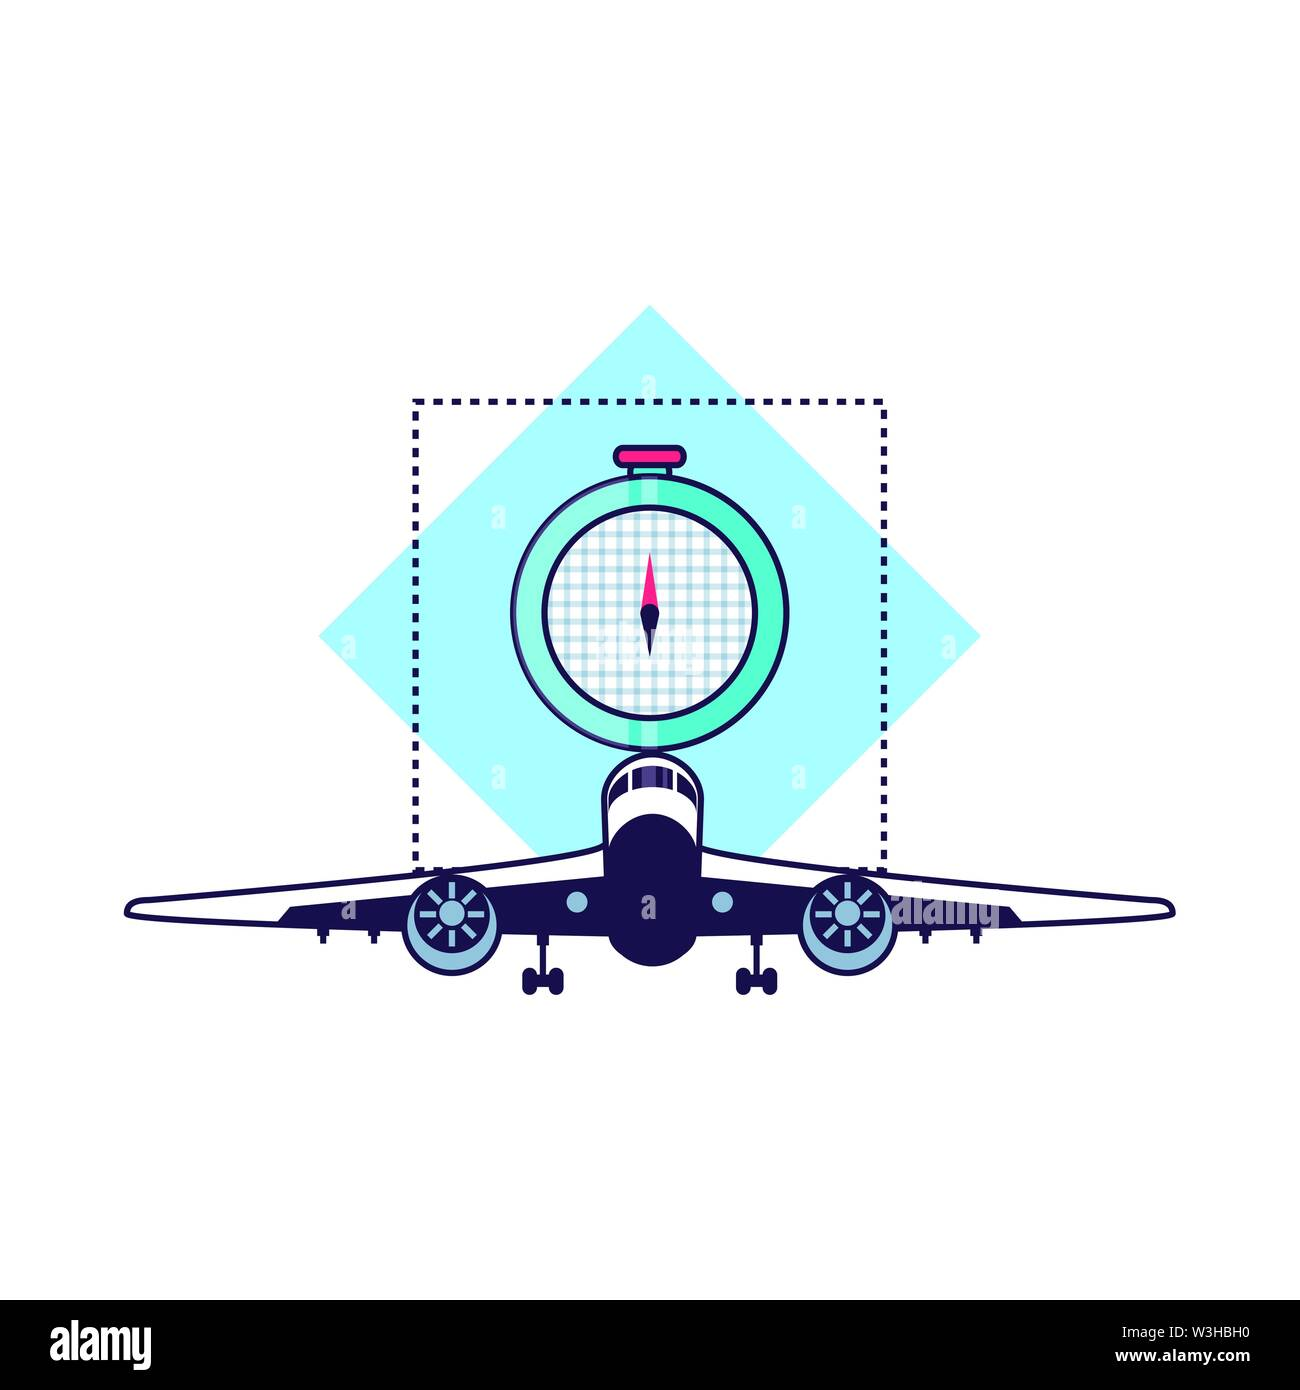 compass guide device with airplane flying vector illustration design - Stock Image